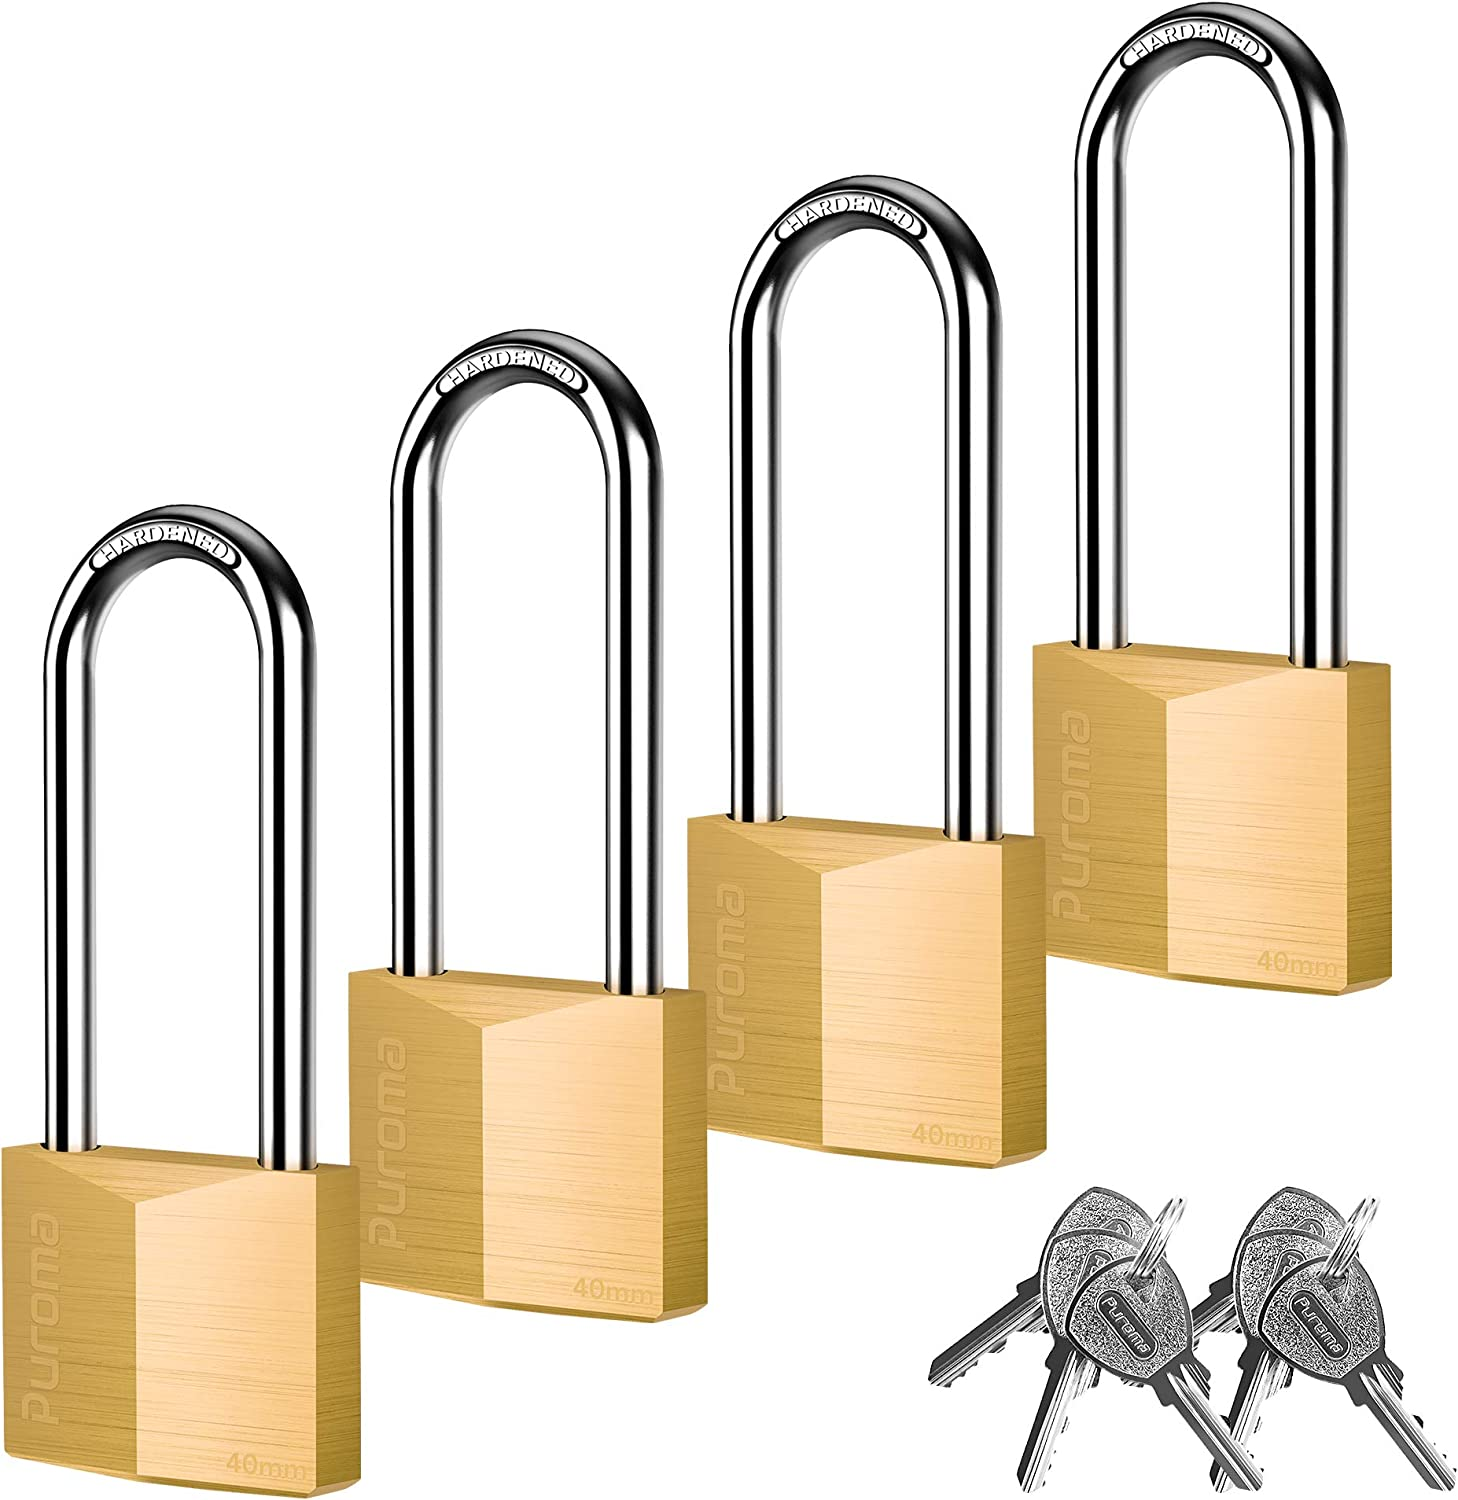 Puroma 4 Pack Keyed Padlock Waterproof Solid Brass Lock, 2.6 Inch Long Shackle for Sheds, Storage Unit School Gym Locker, Fence, Toolbox, Hasp Storage